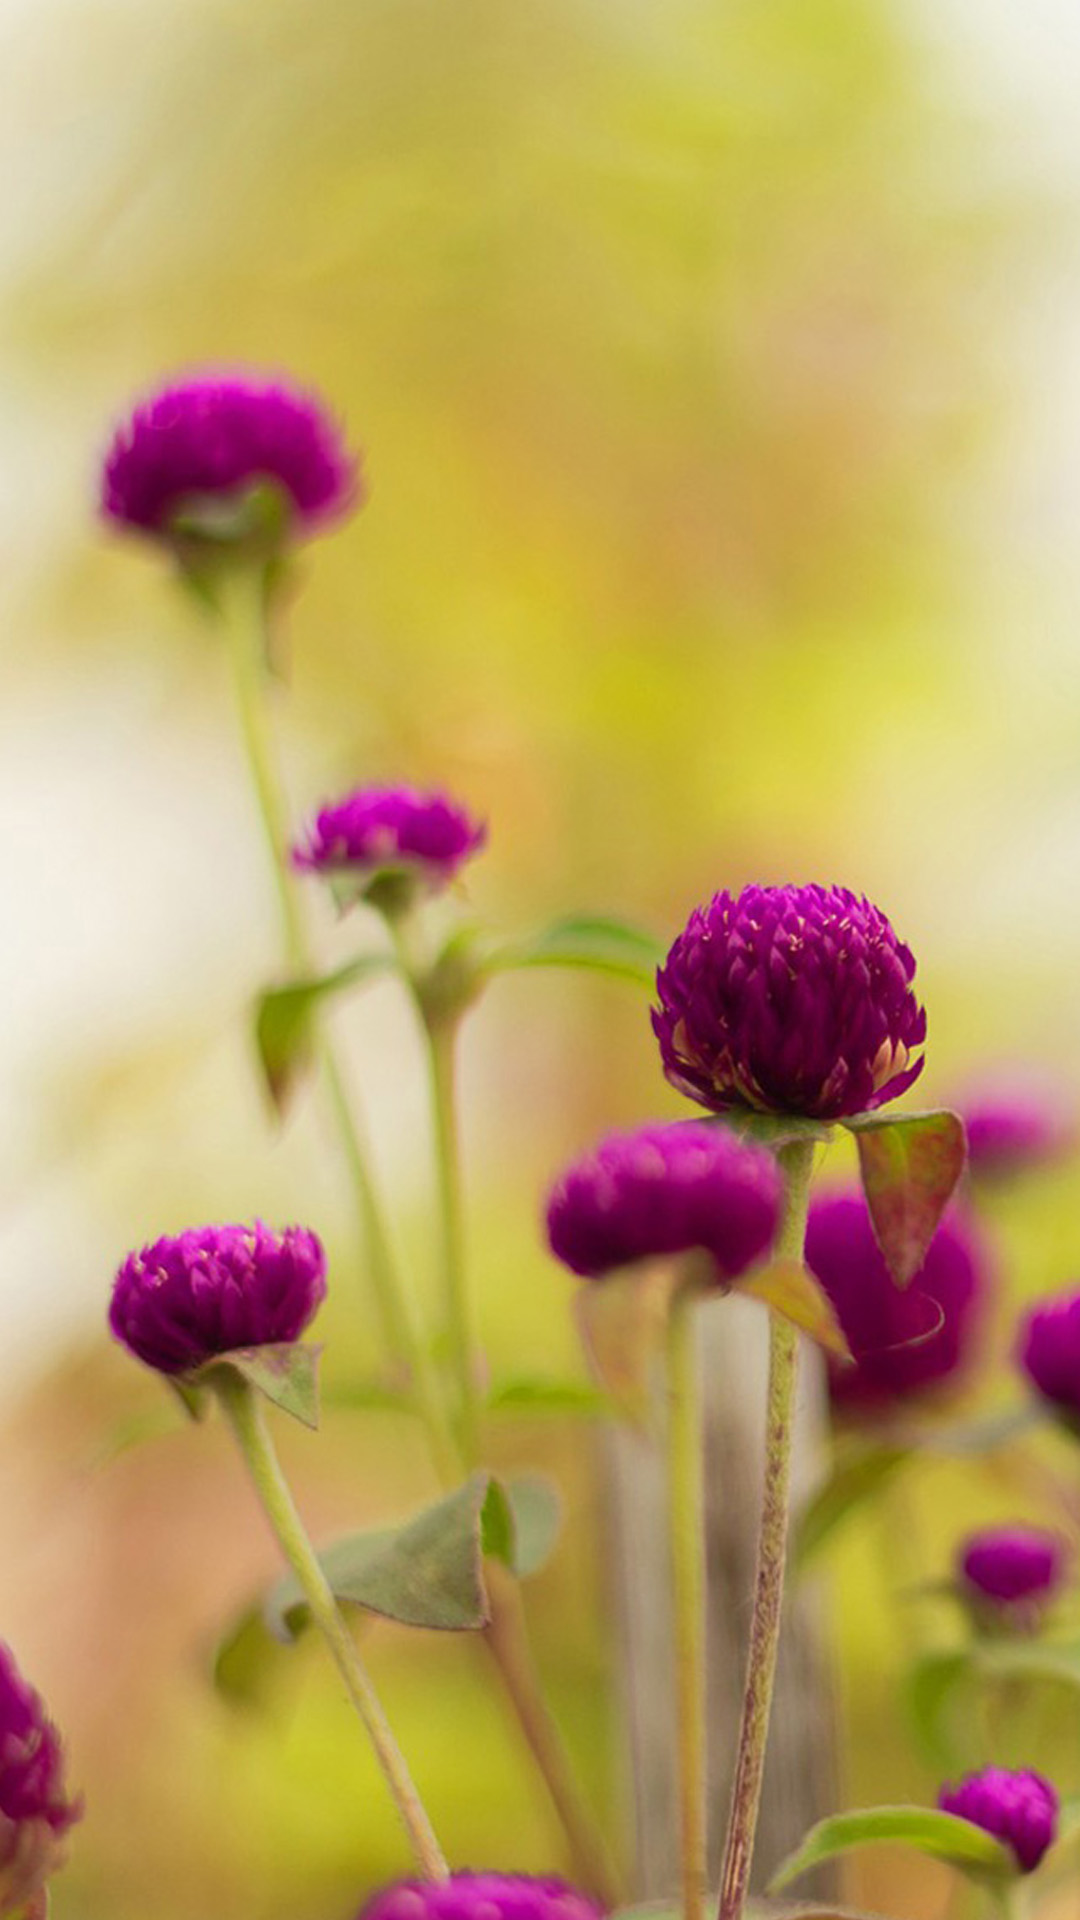 Animated Mobile Phone Wallpapers Flowers Colorful Purple Flower Hd Wallpaper Iphone 6 Plus